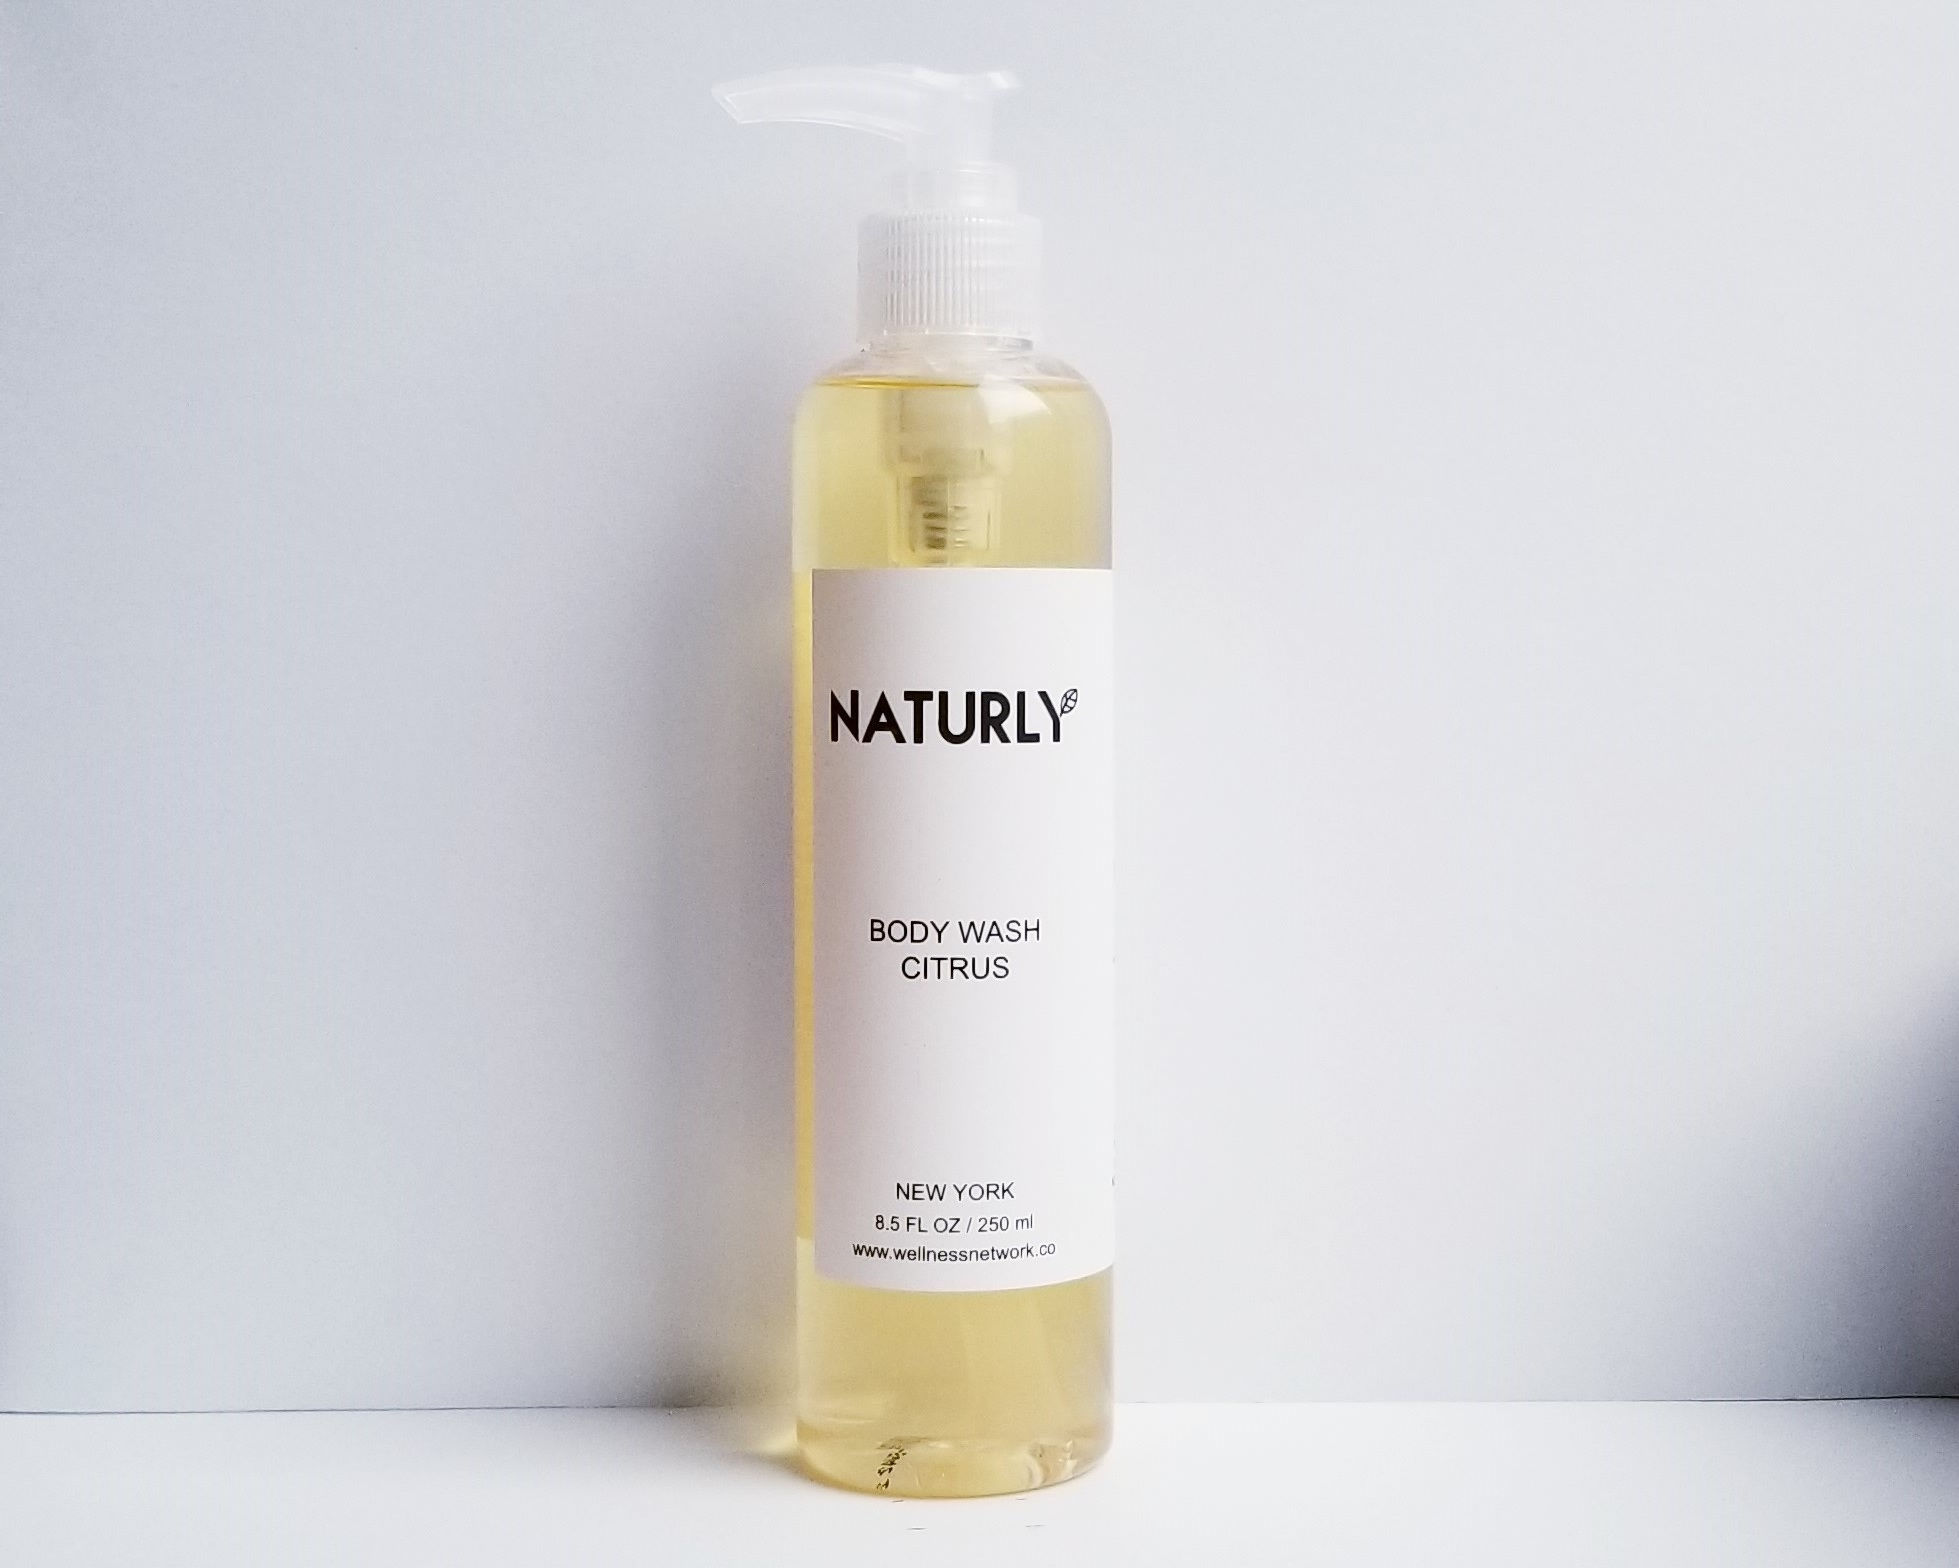 Body Wash with lemon & grapefruit oils, anti-oxidant vitamin E - $28